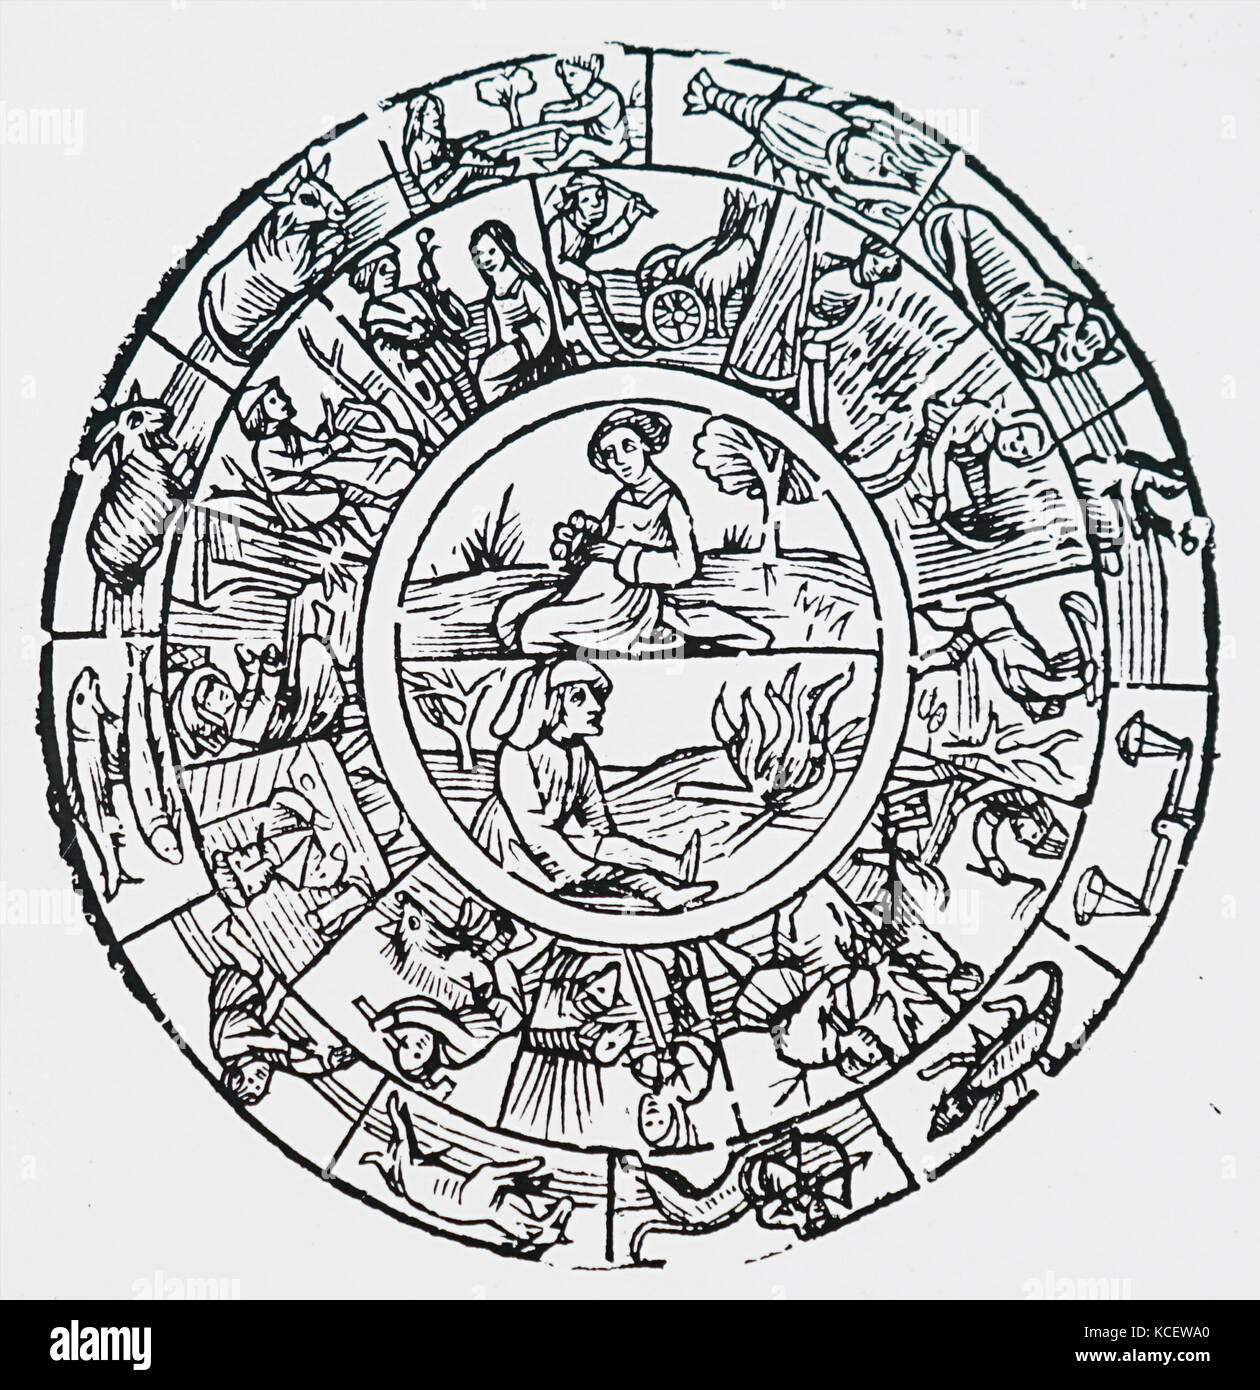 Engraving depicting the seasonal occupations of the earth and the signs of the Zodiac governing them. Dated 16th - Stock Image